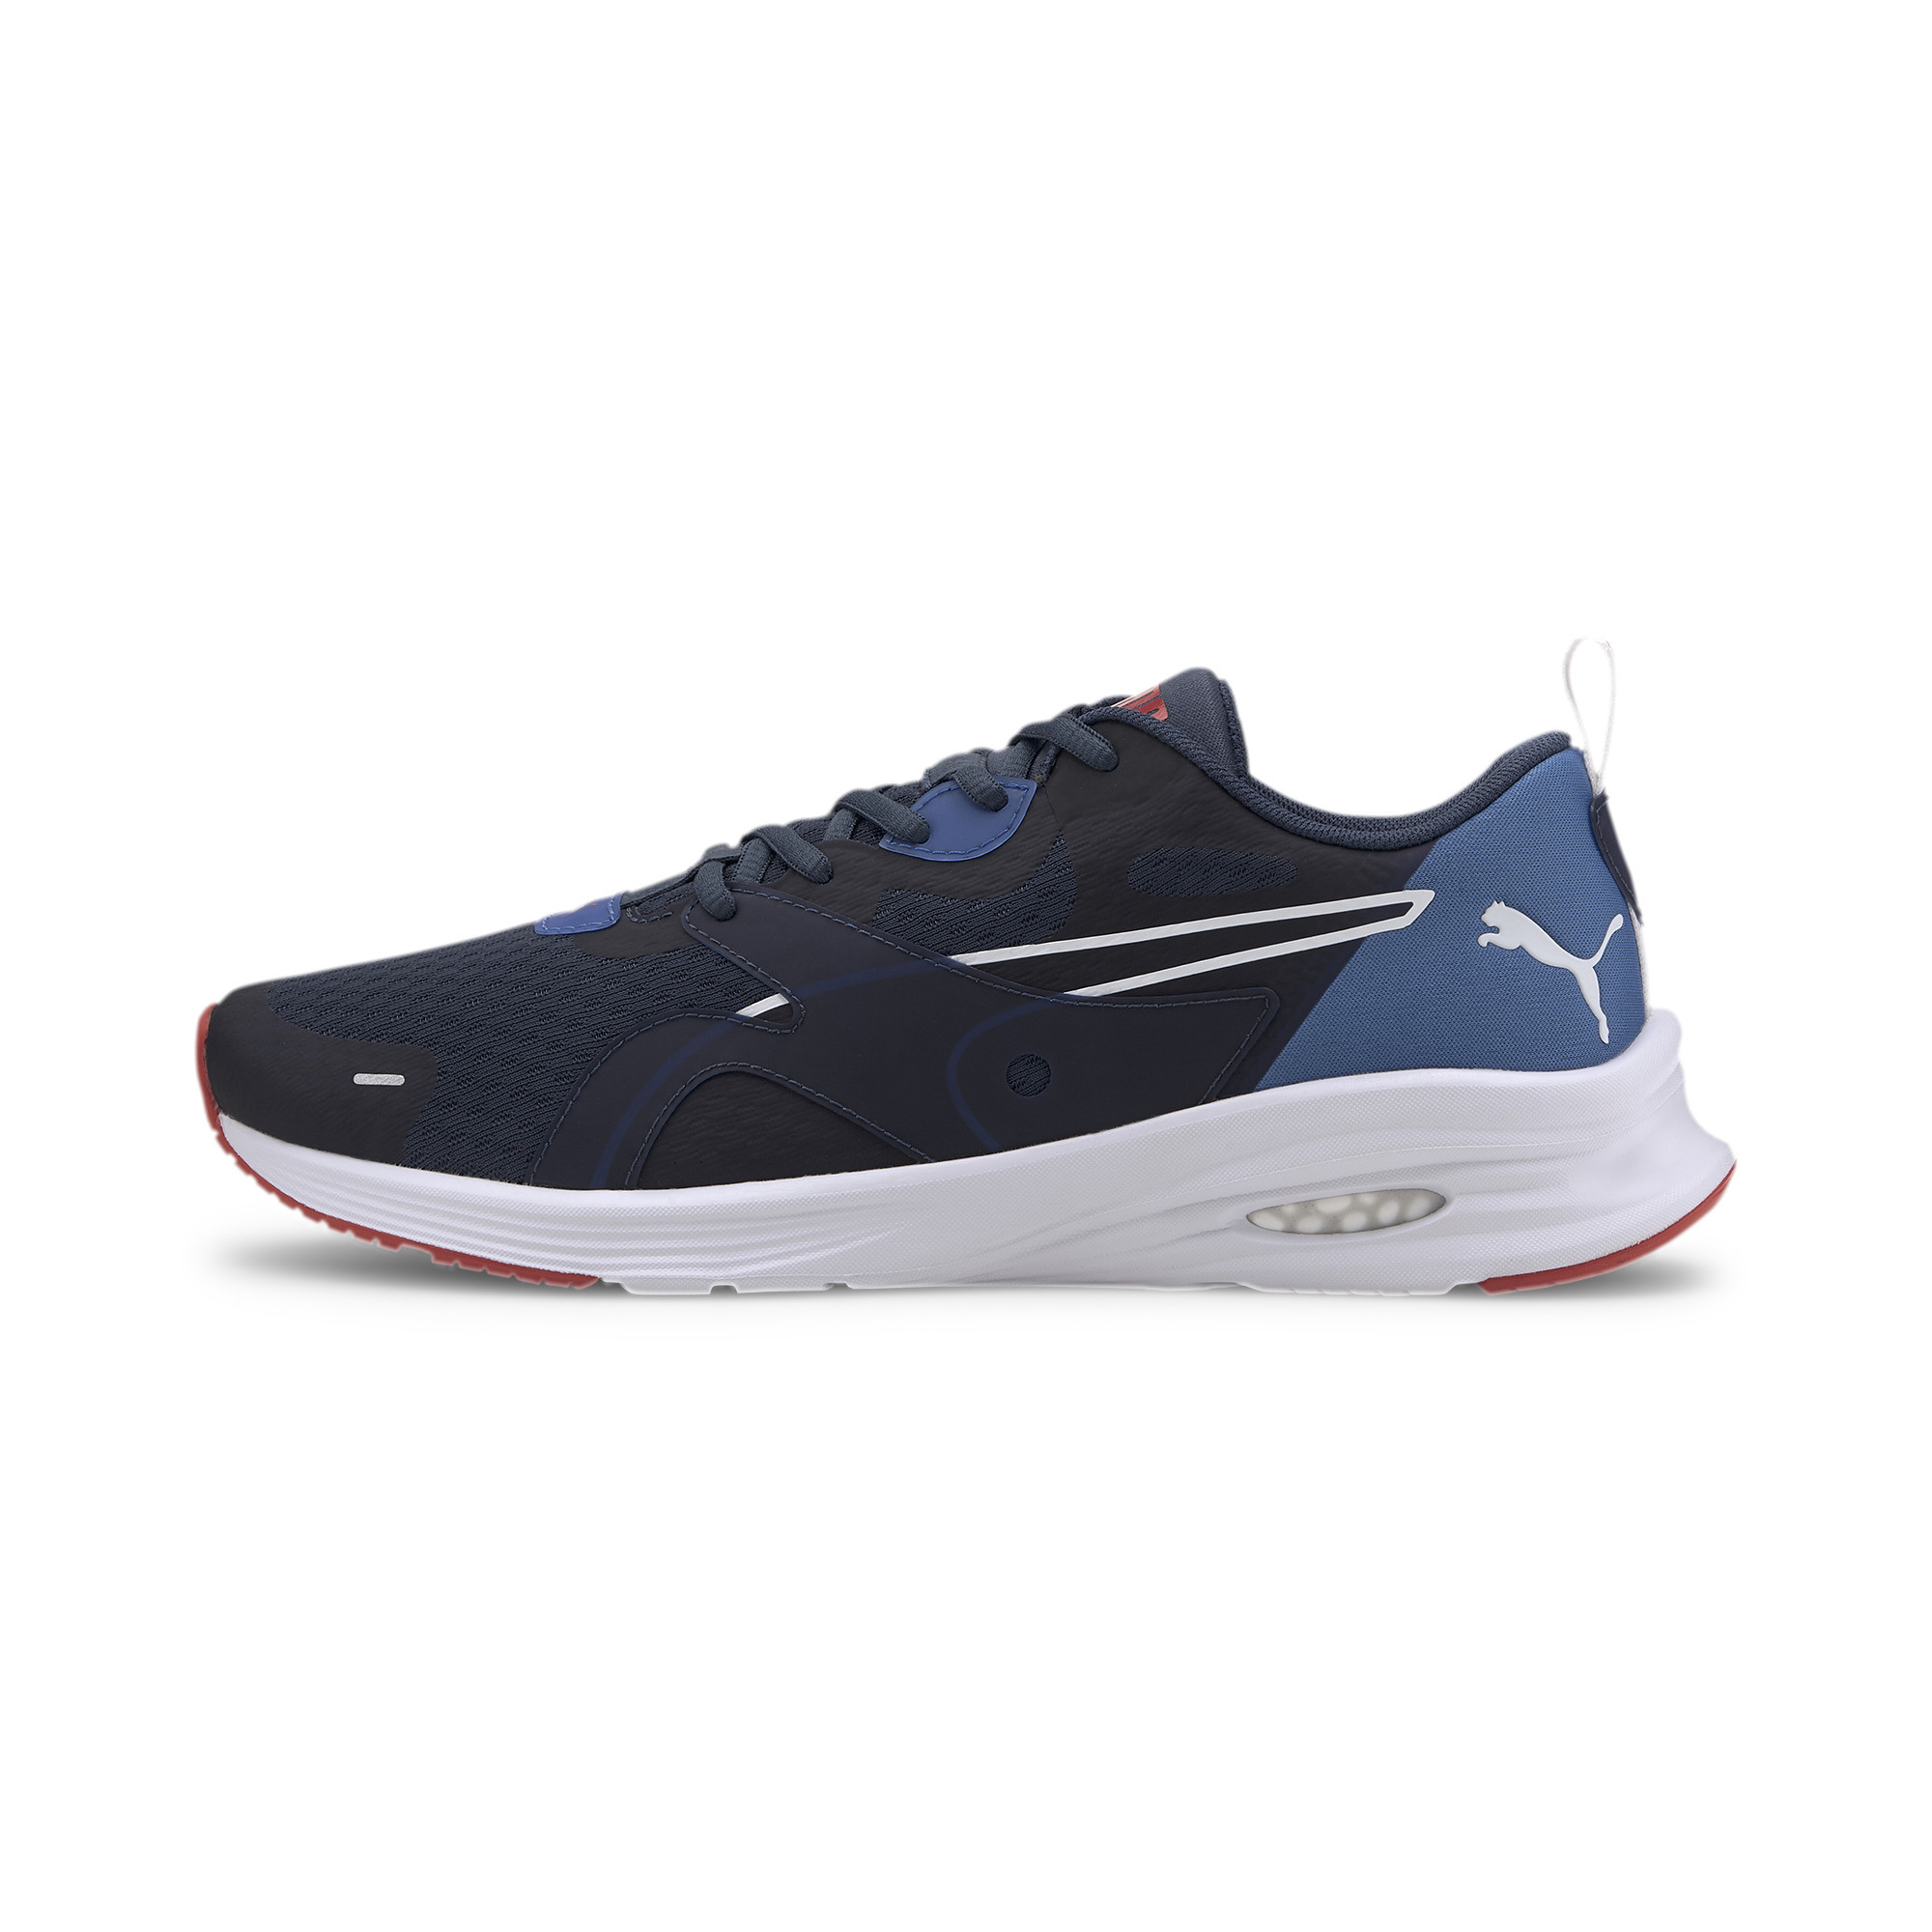 PUMA-Men-039-s-HYBRID-Fuego-Running-Shoes thumbnail 24